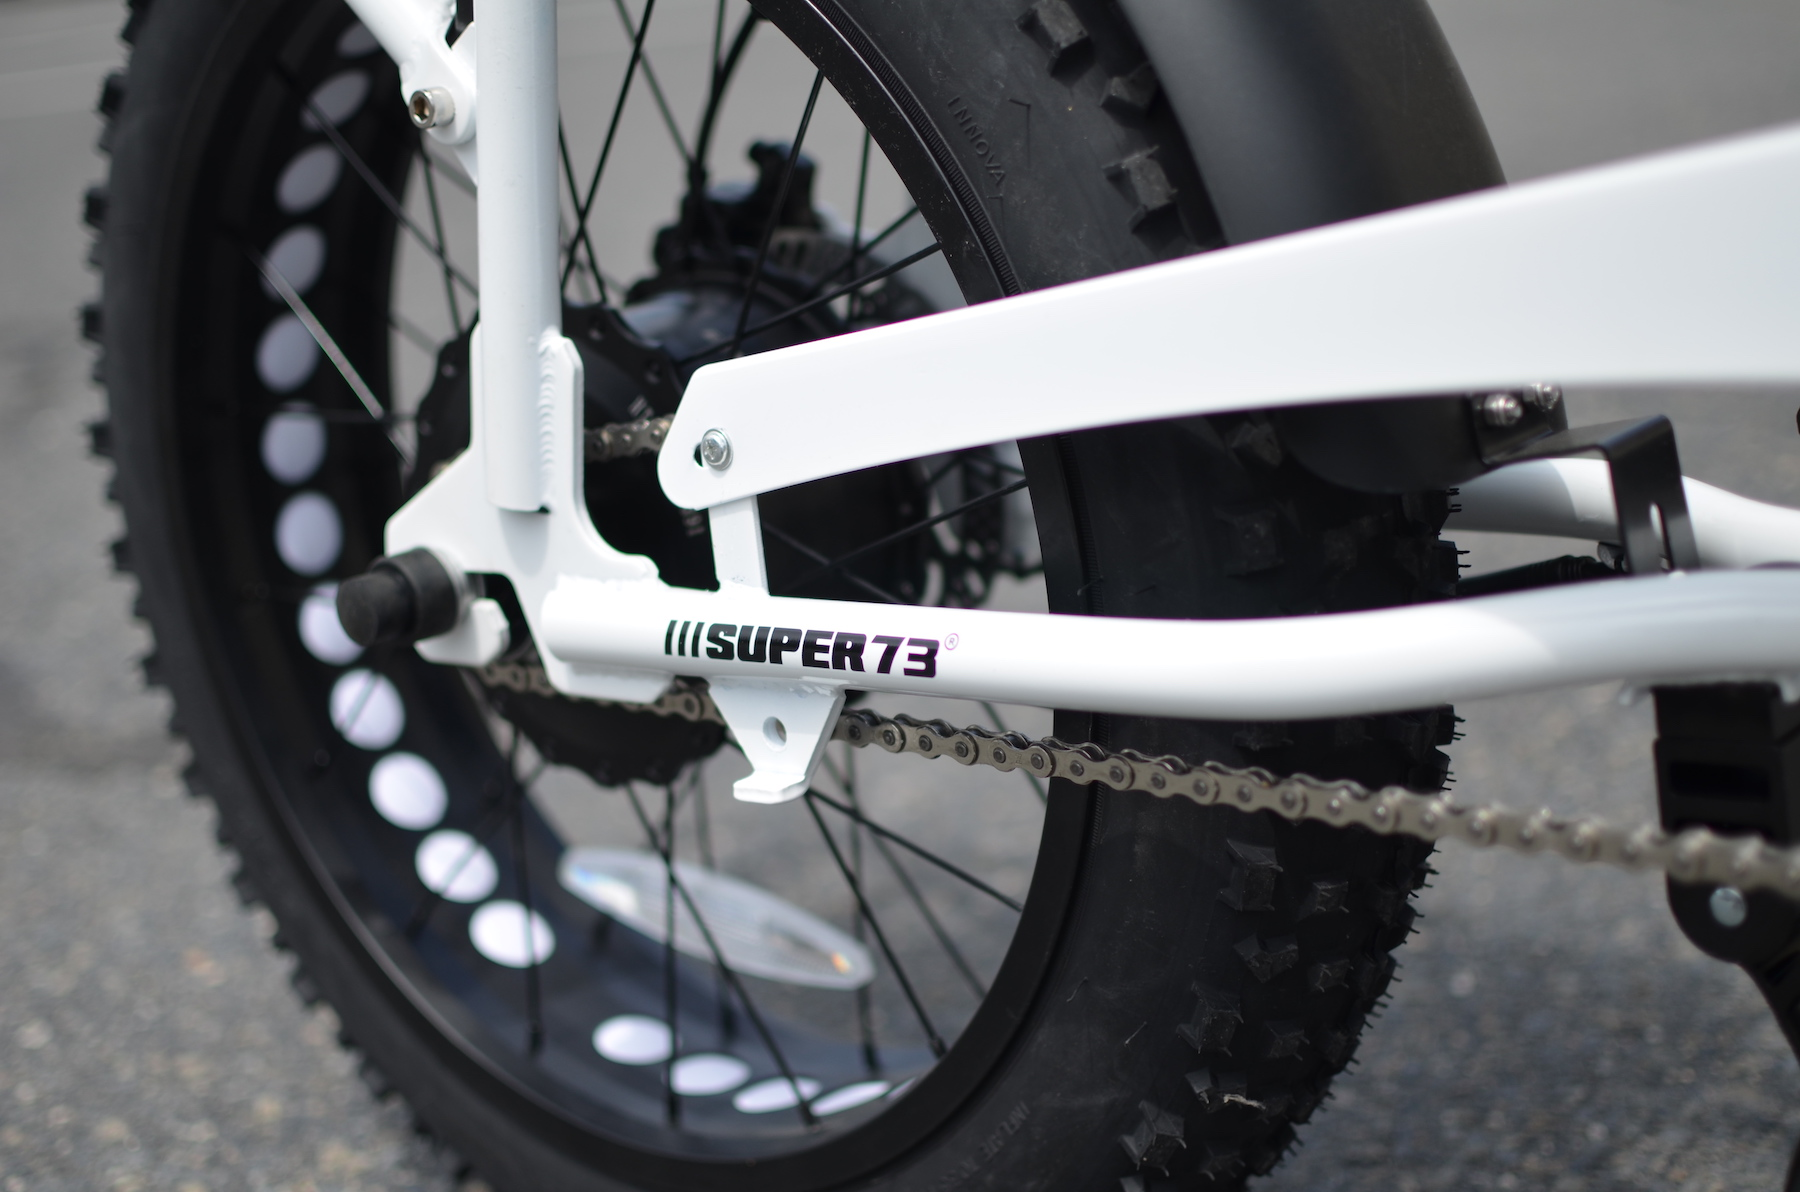 Super73-S1 review: the fast, fun e-bike that started the